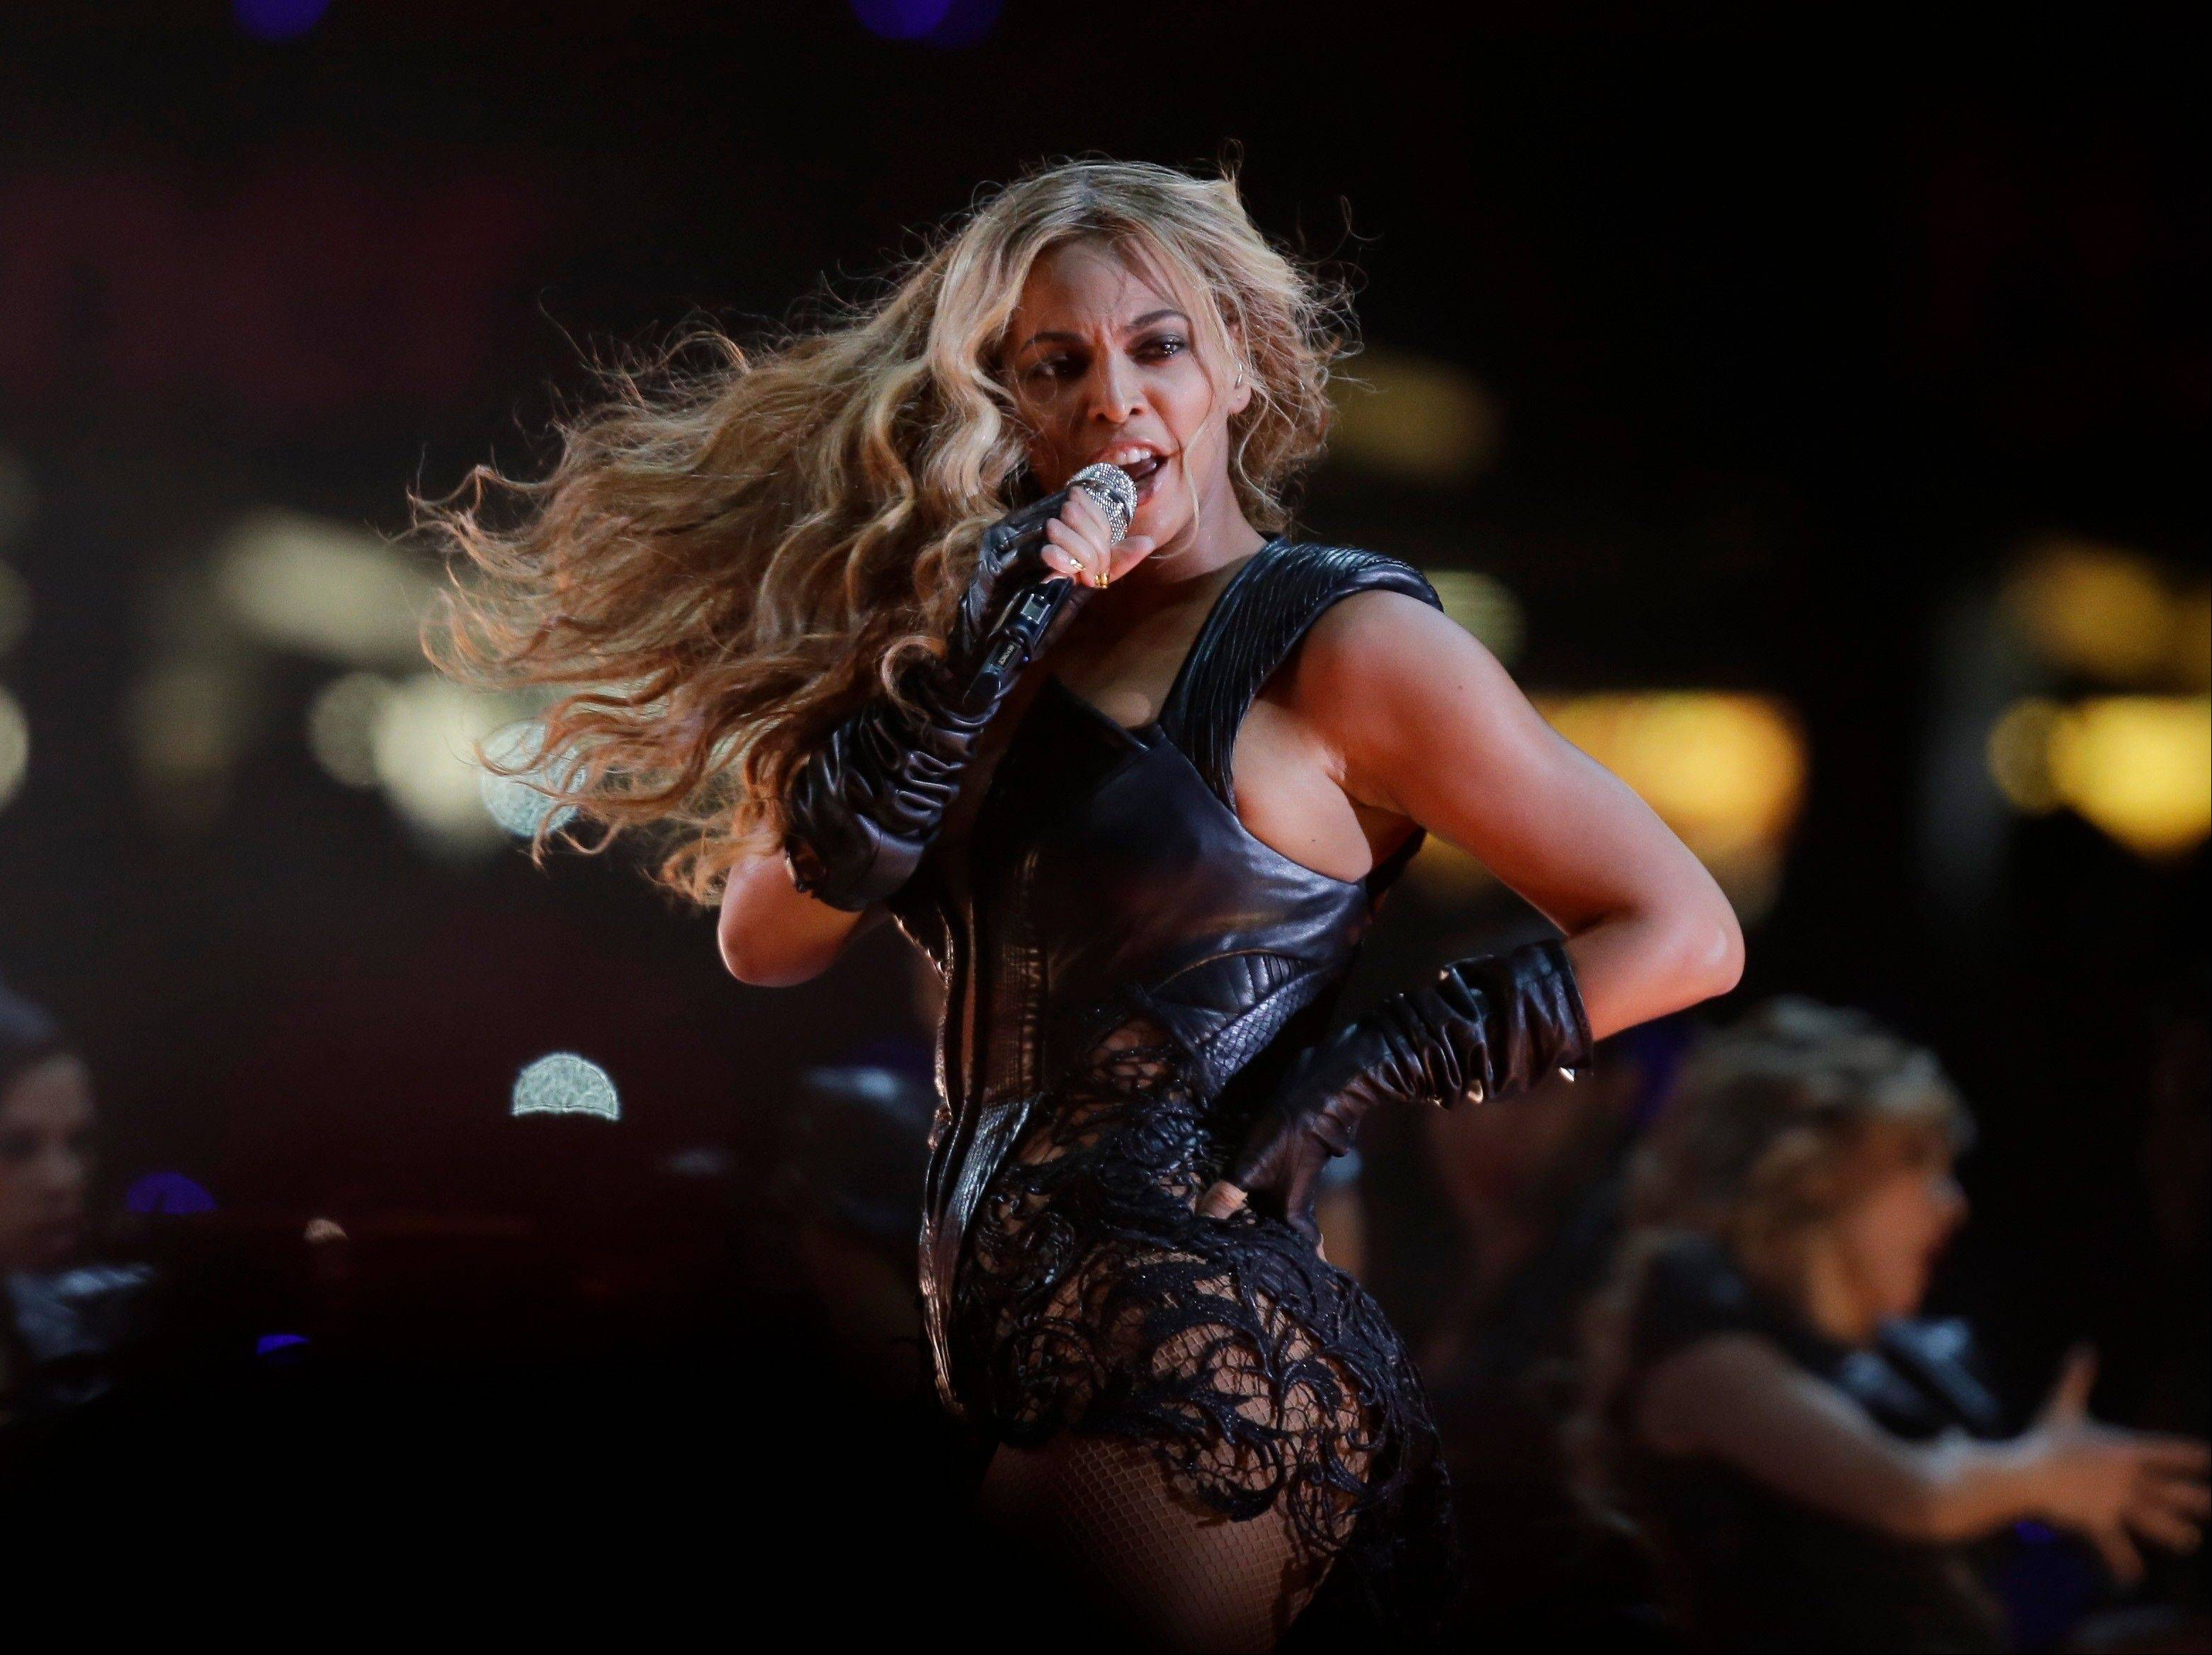 Beyonc� performs during the halftime show of Super Bowl XLVII on Sunday.